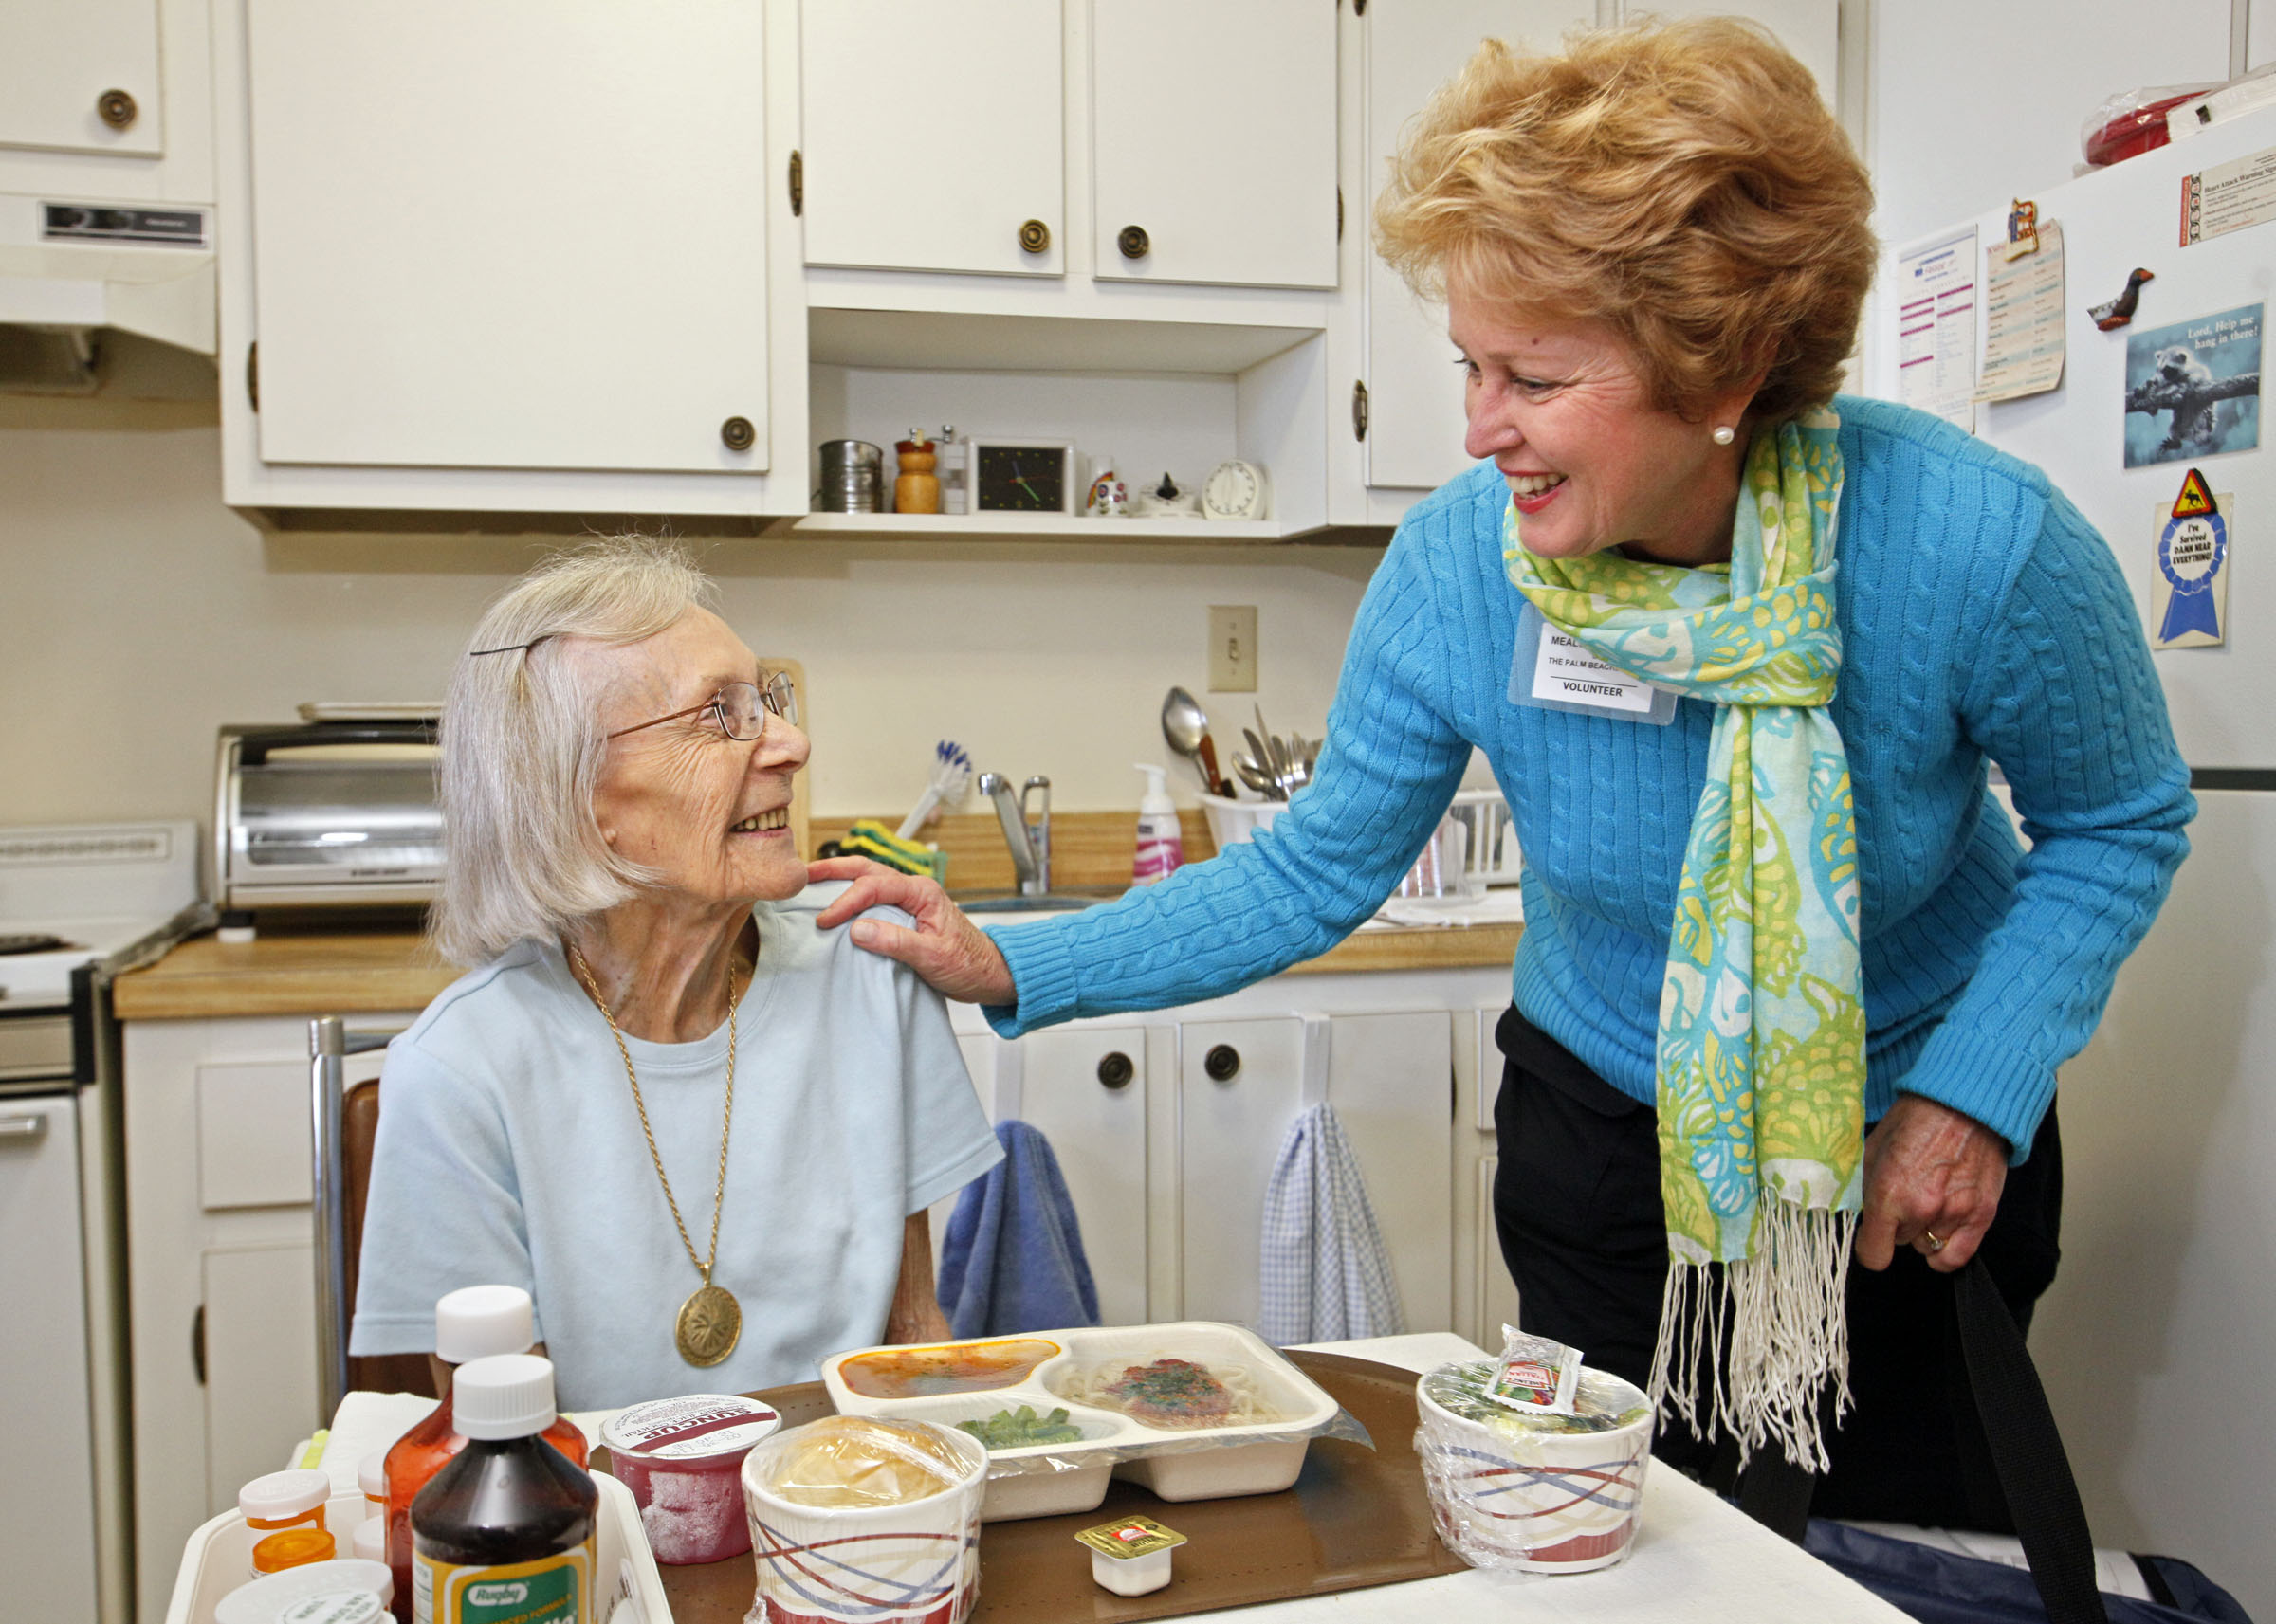 031111   (Lannis Waters/The Palm Beach Post) WEST PALM BEACH  -- Meals on Wheels of the Palm Beaches volunteer Patty Ring (cq)(right) chats with Elma Hatch (cq) after delivering a meal to her Friday morning.  The county finally has an official Meals on Wheels program, affiliated with the national program.